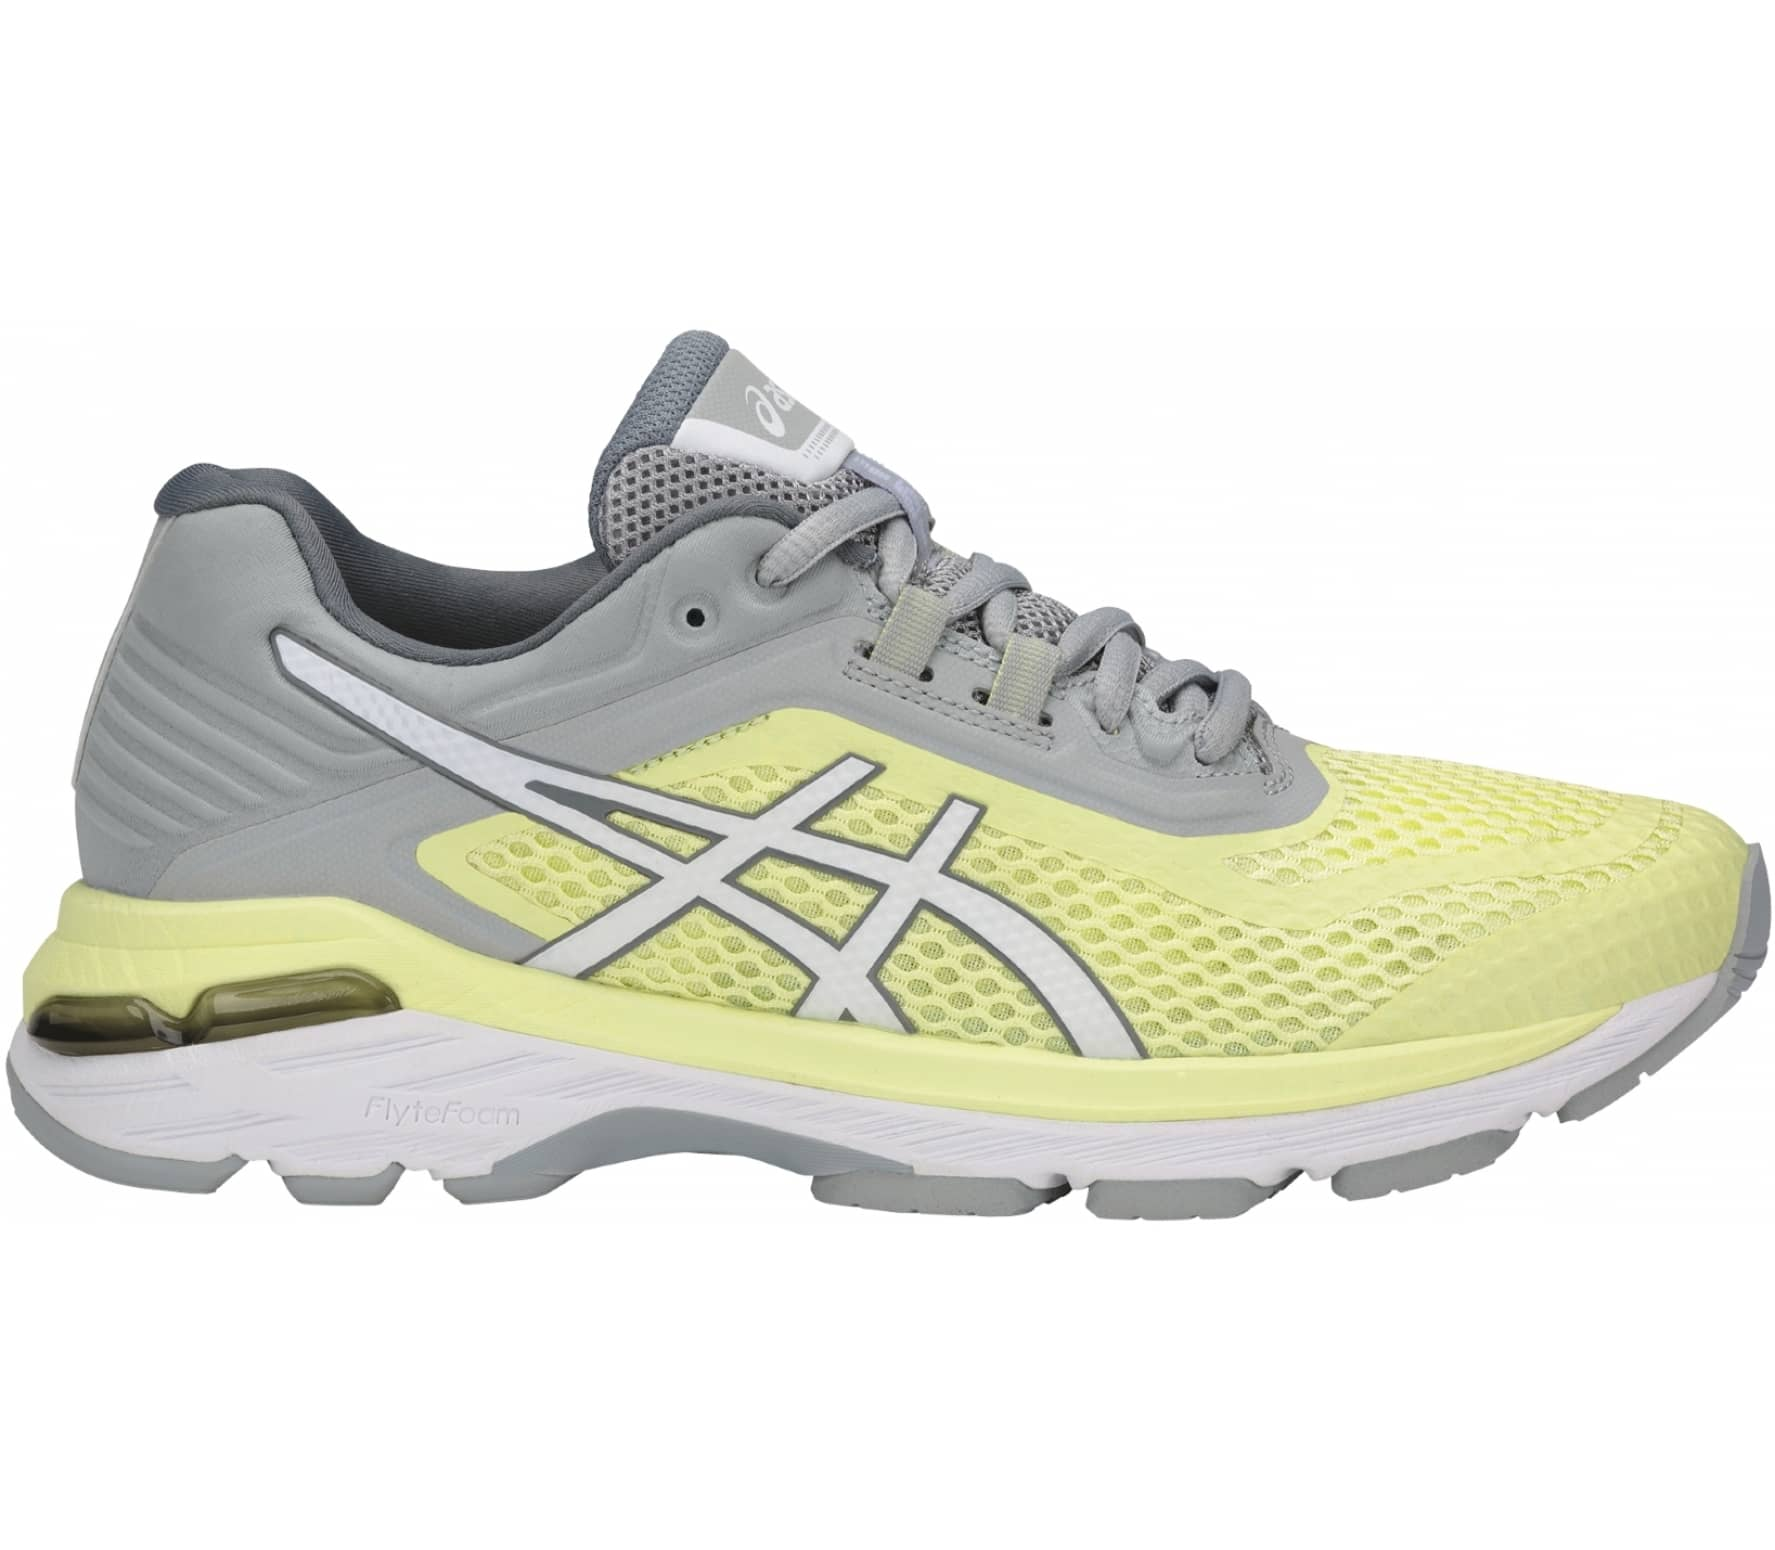 newest 91aba ef051 ASICS - Gt-2000 6 women's running shoes (yellow/grey)